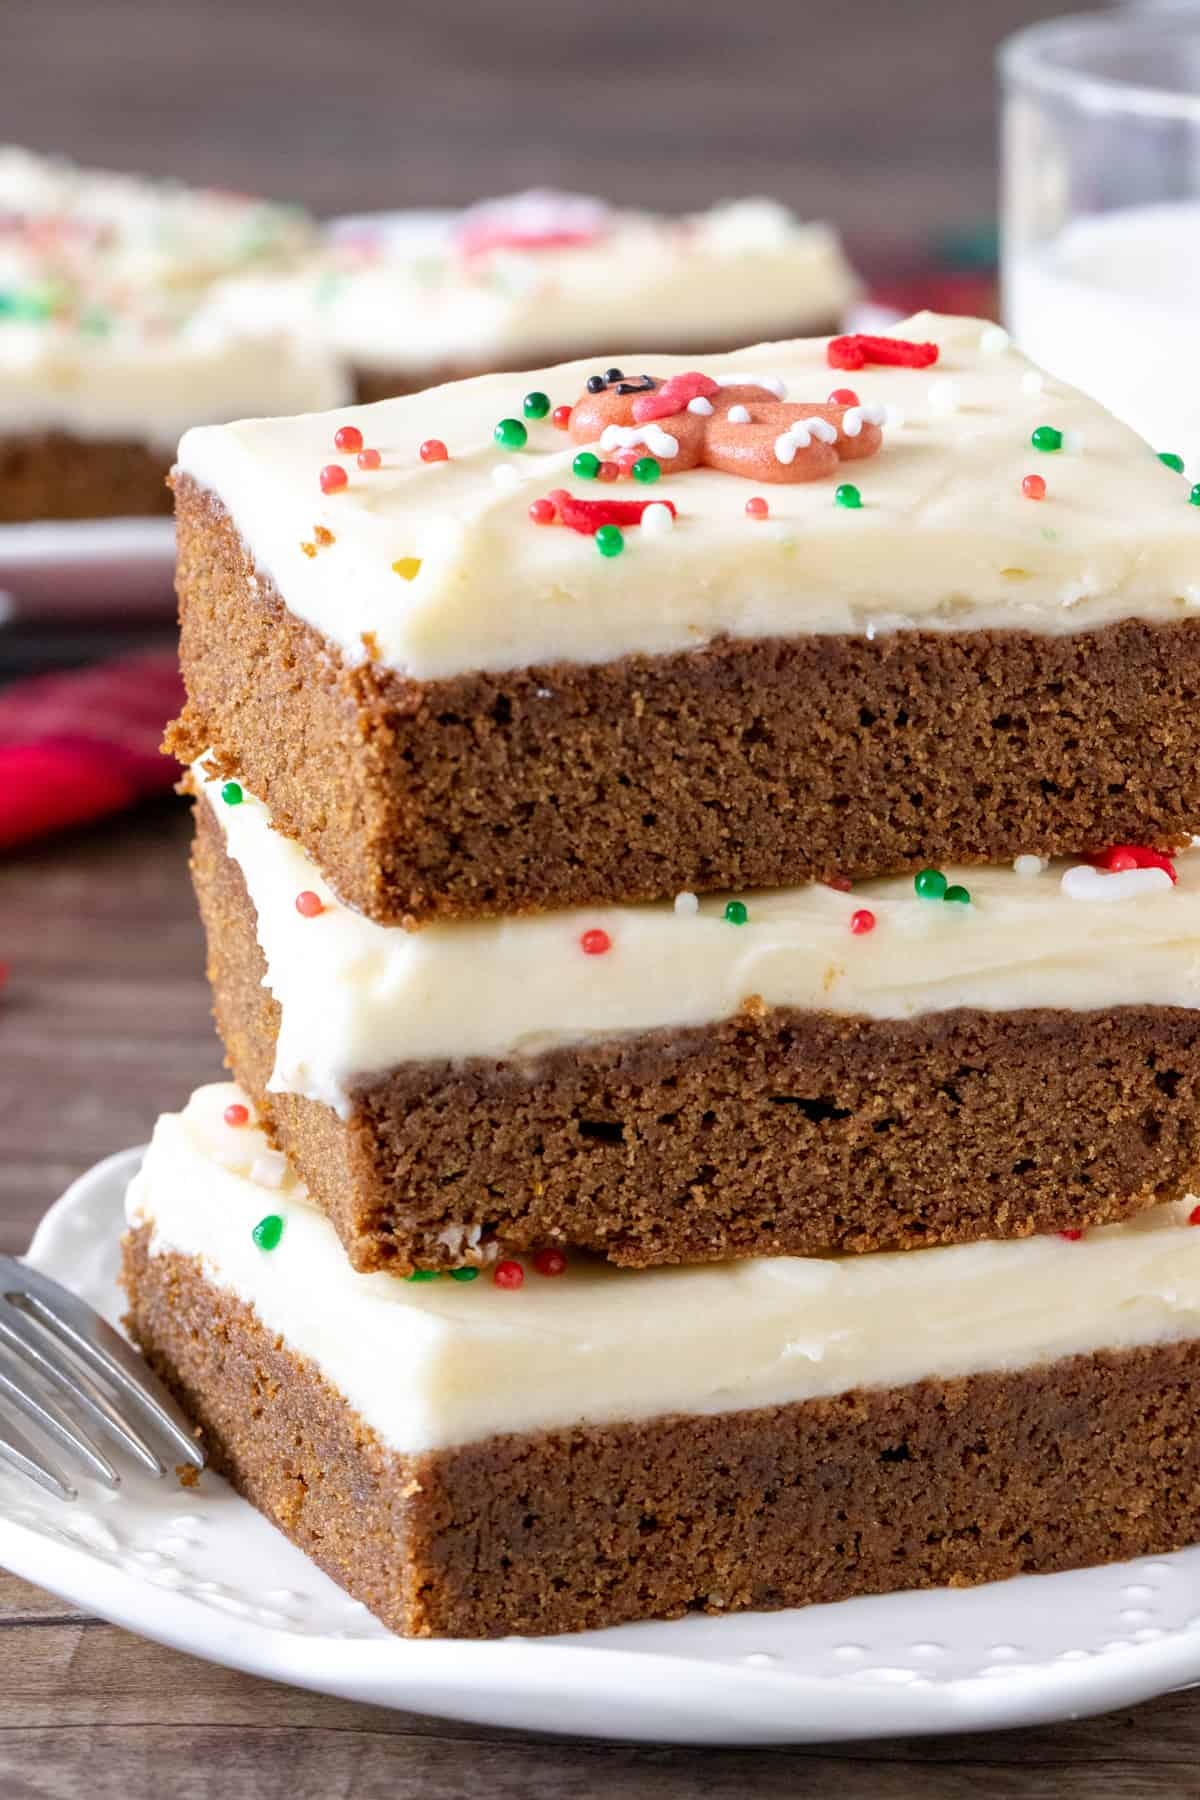 Stack of 3 cookie bars topped with frosting and sprinkles